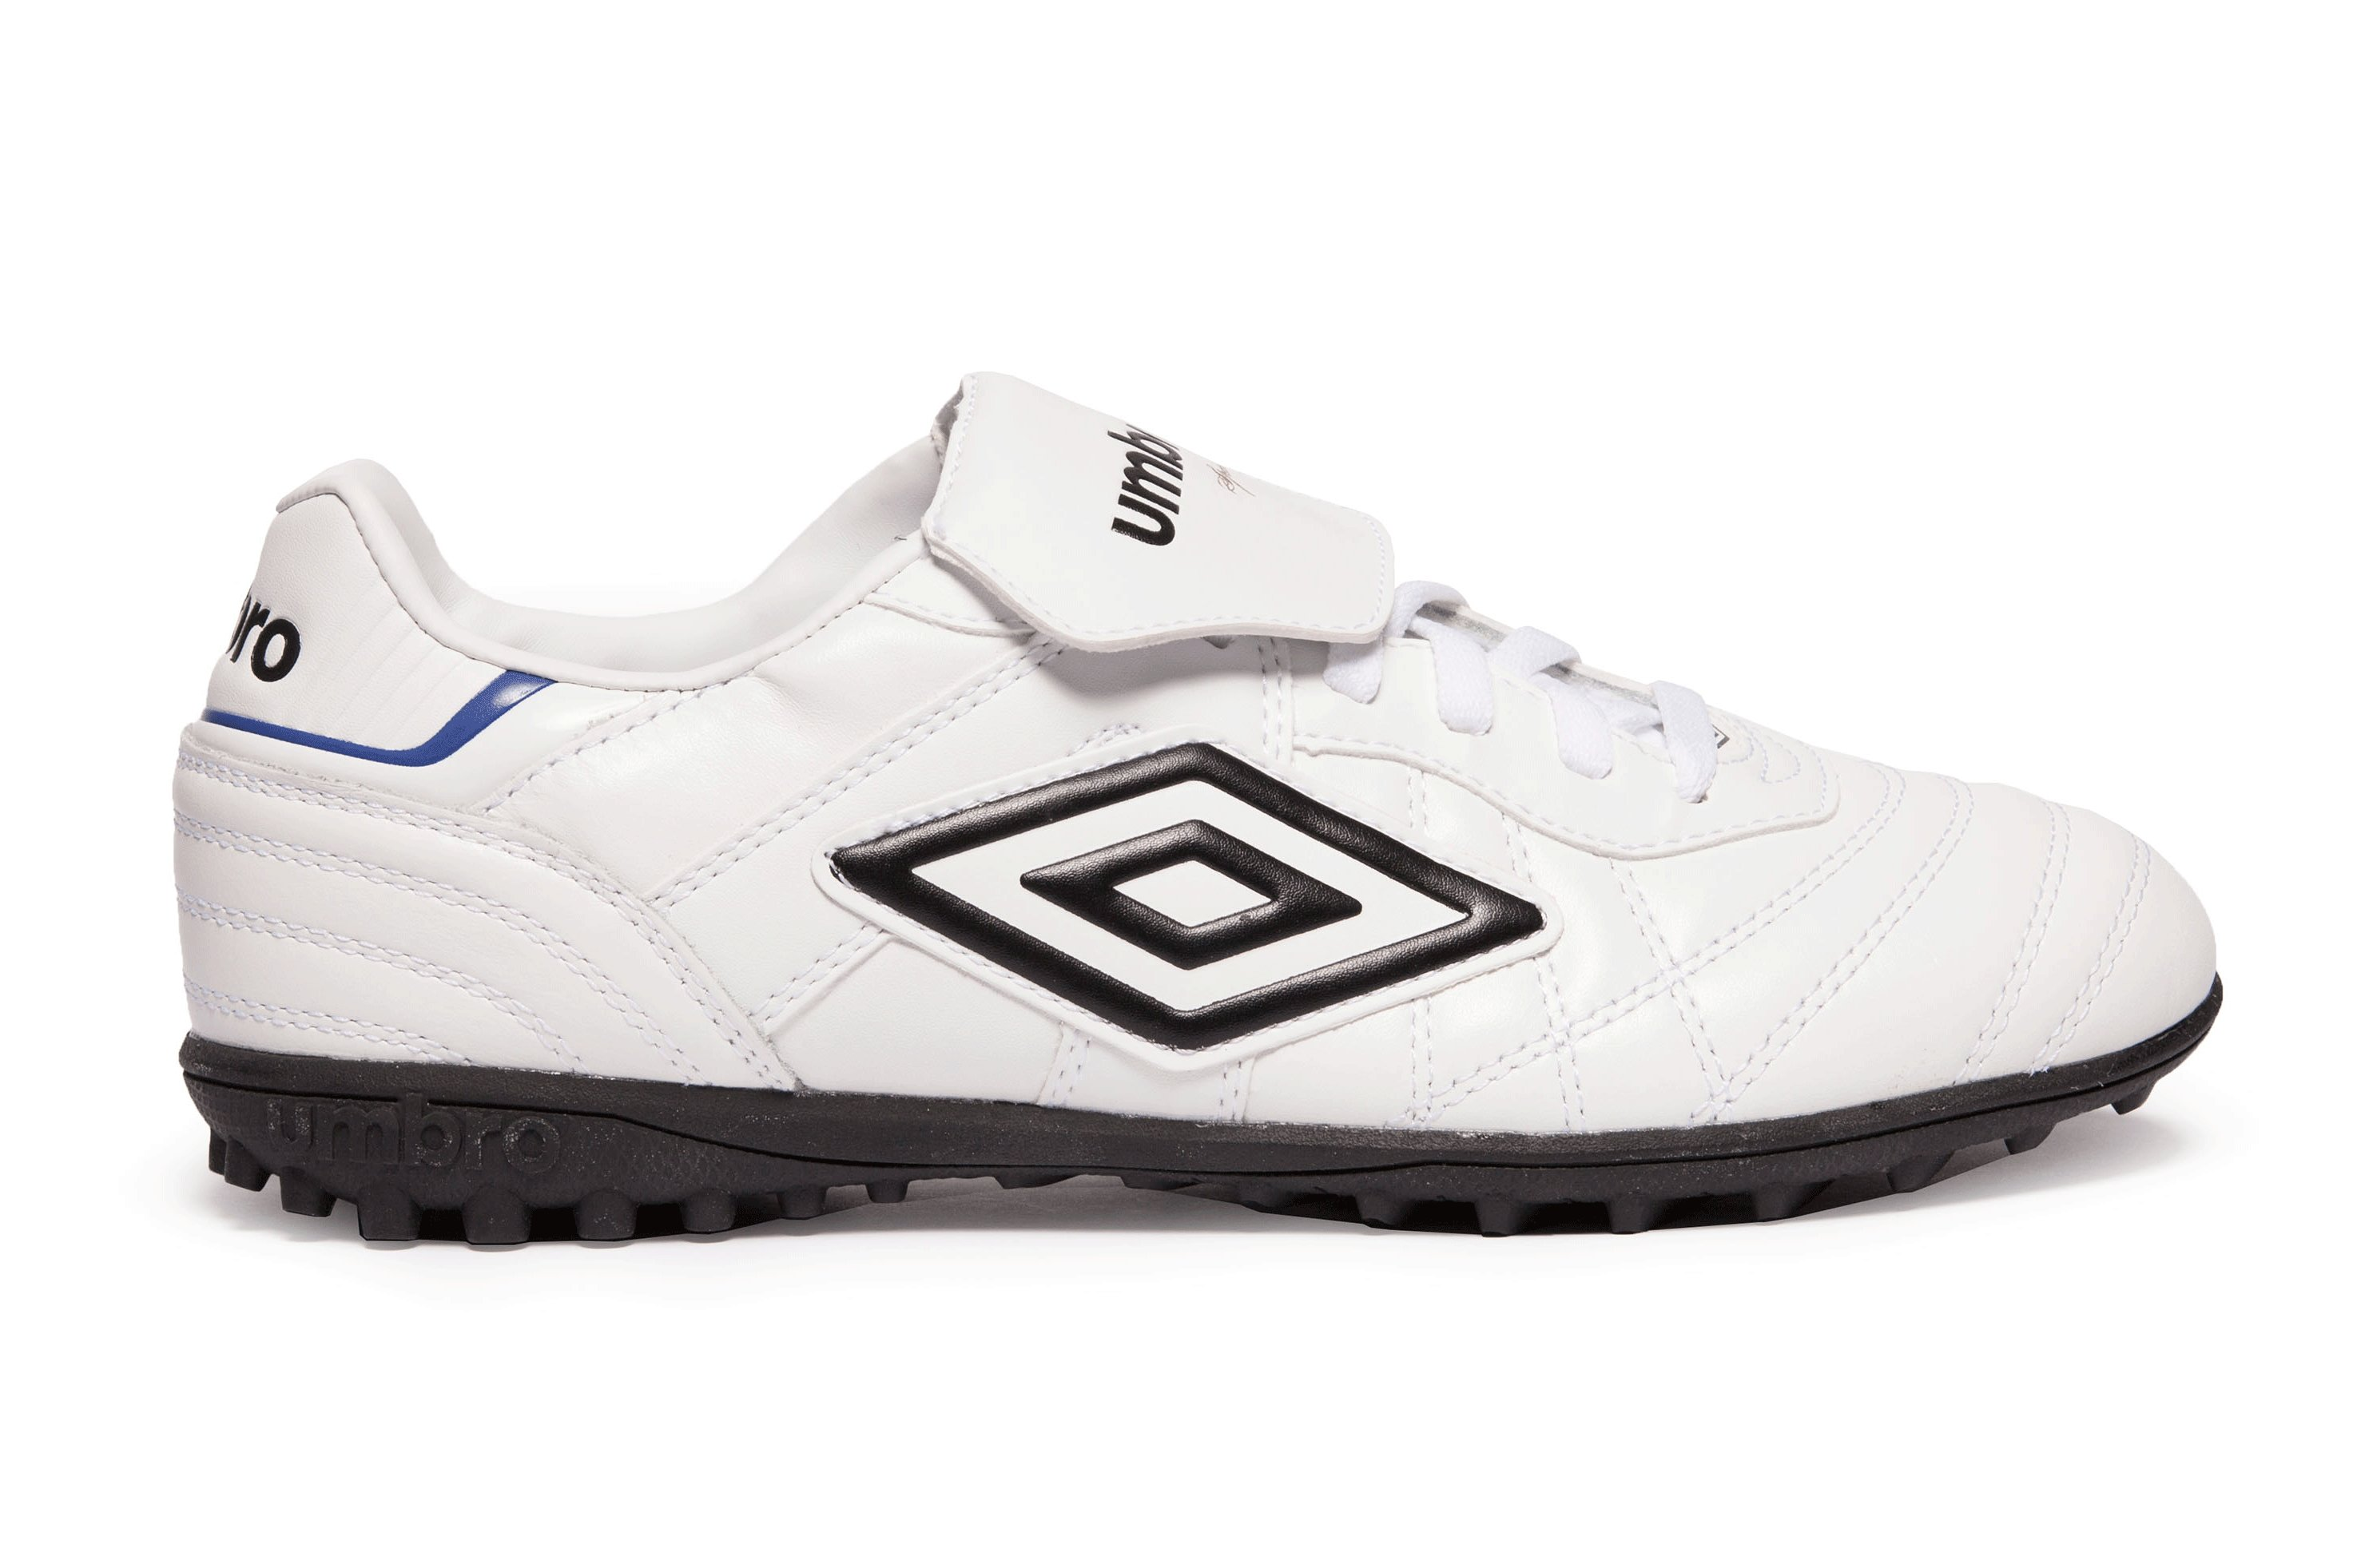 800cf549c View the SPECIALI ETERNAL PREMIER - ASTRO TURF TRAINERS from the Womenswear  collection